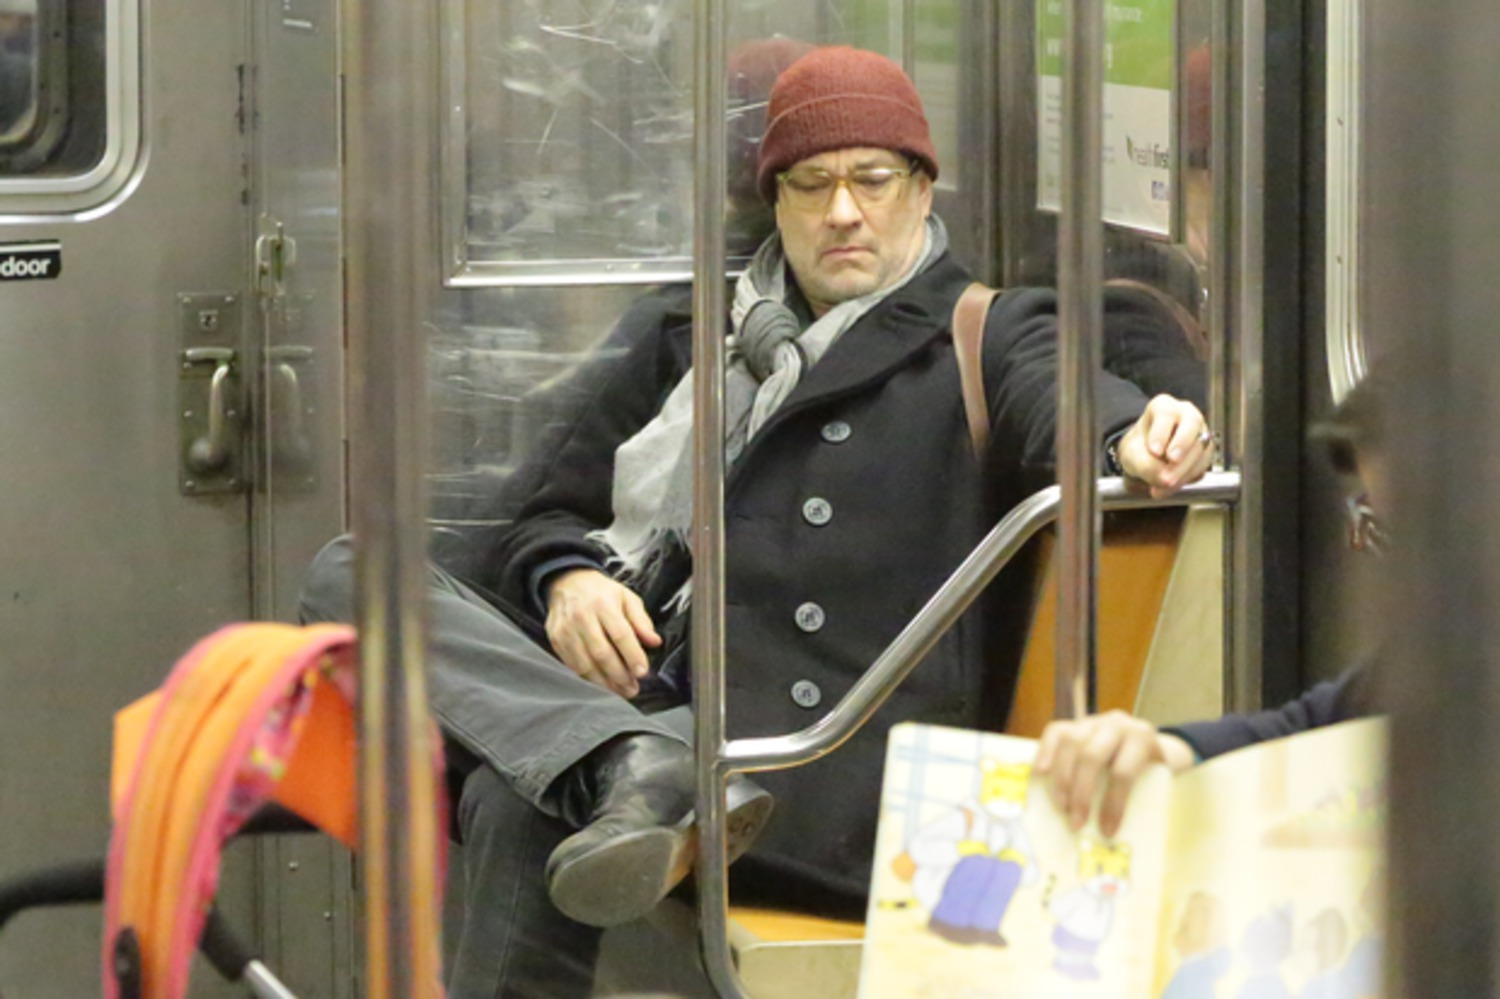 You're taking up two seats sir - Tom Hanks sits back as he rides the New York subway  http://t.co/Nq8Me2sBtJ http://t.co/gBNIBdcnAB